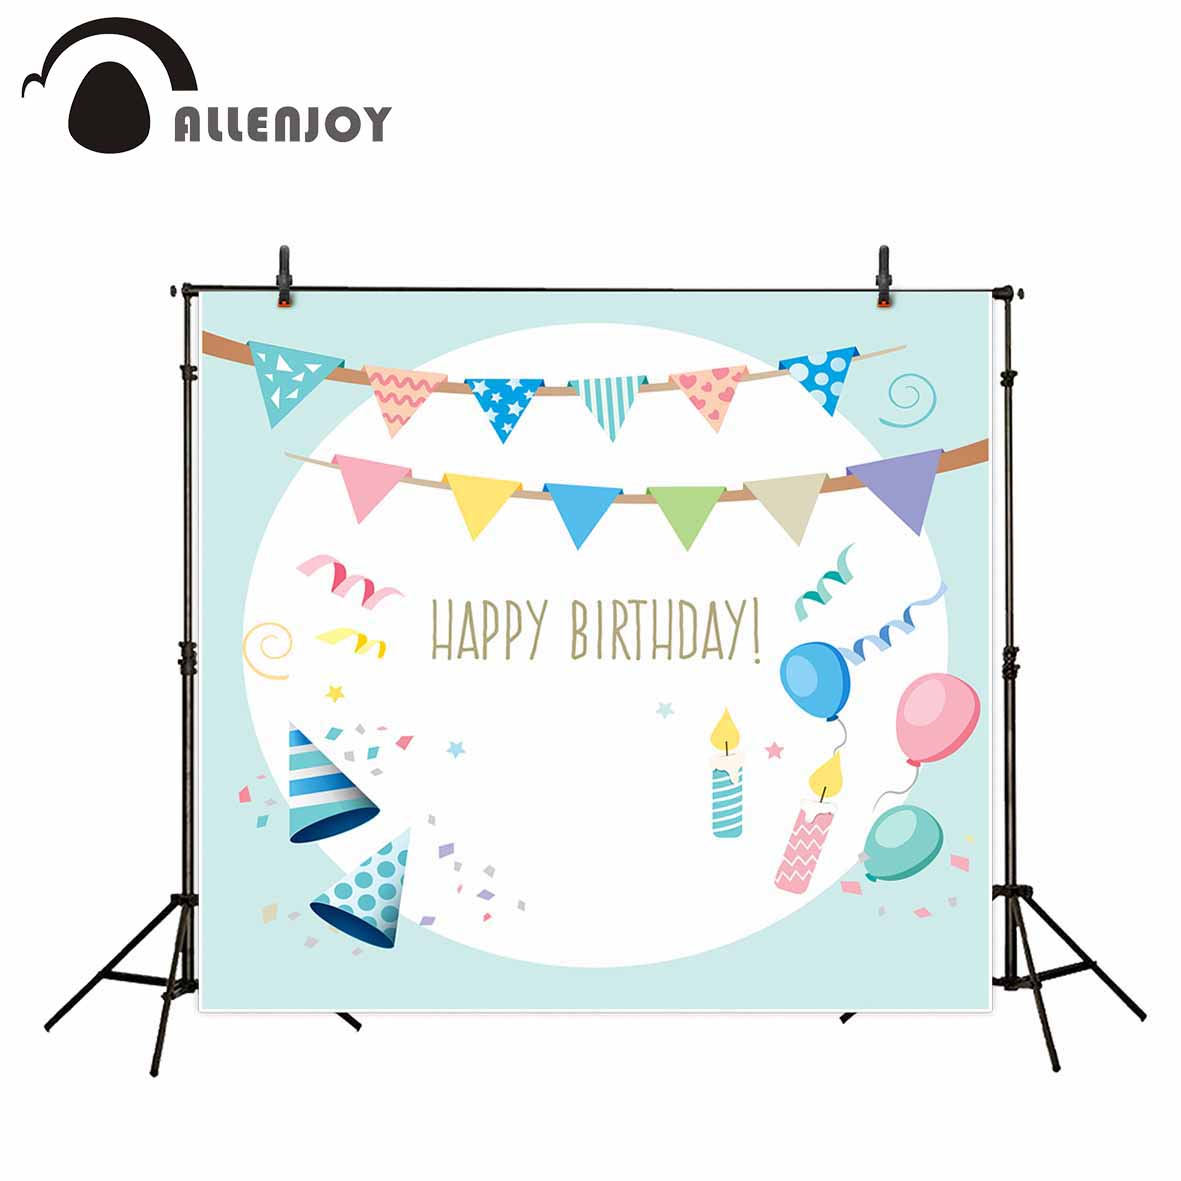 Allenjoy vinyl photographic background Blue boys balloon party birthday backdrop new arrivals photocall professional customize